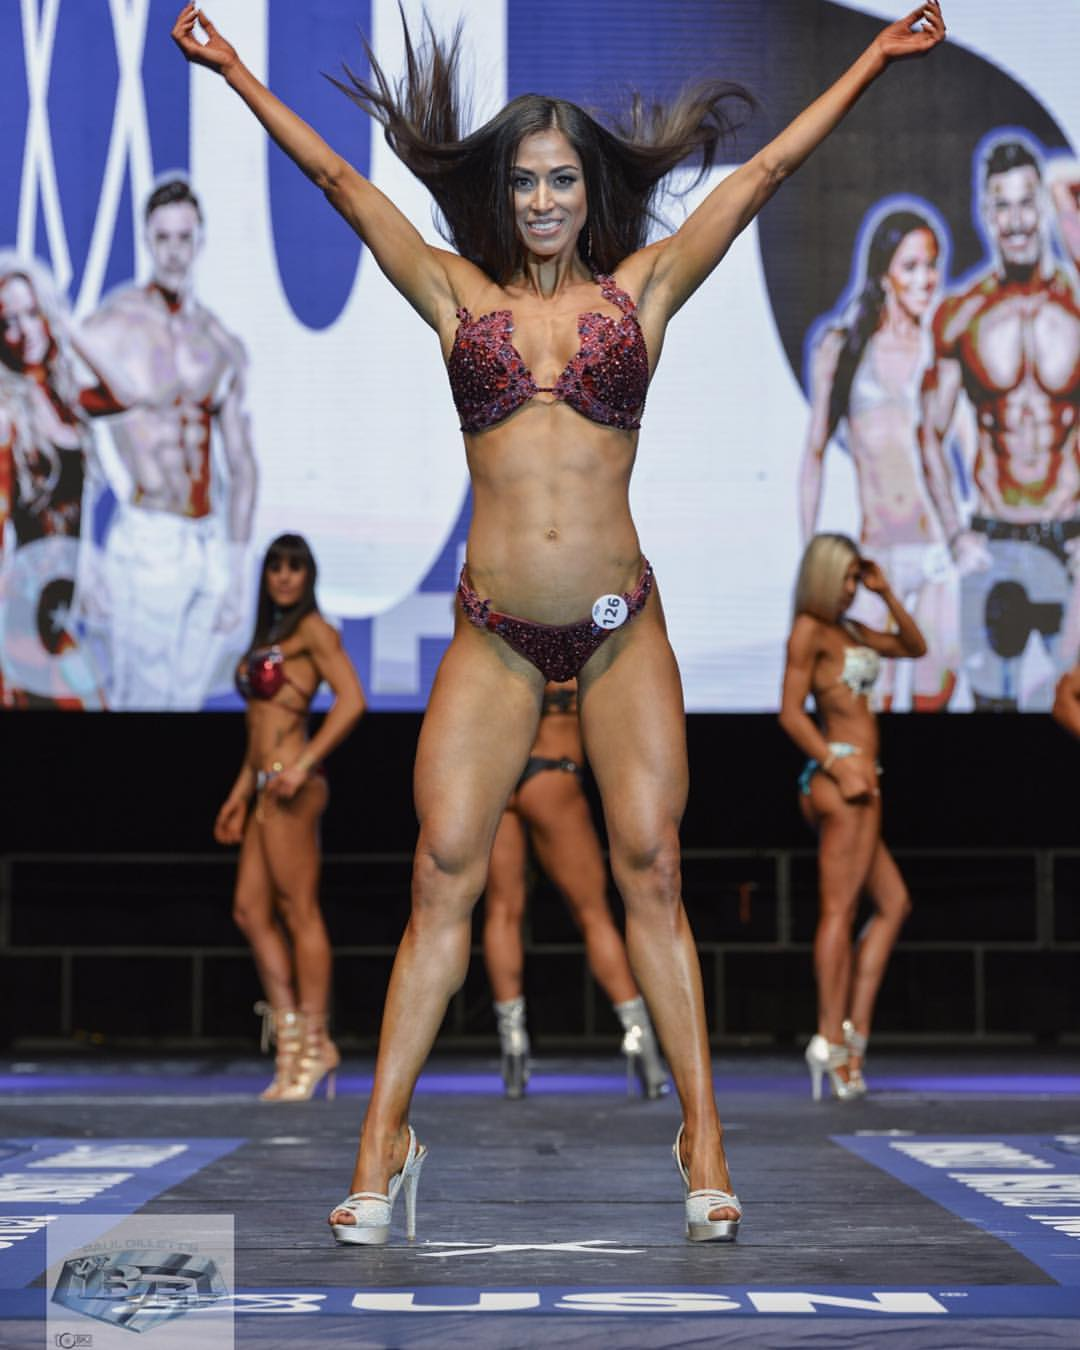 fitnish.com interview With PR Manager Turned Trainer And Wbff Pro, Irina Nesterova